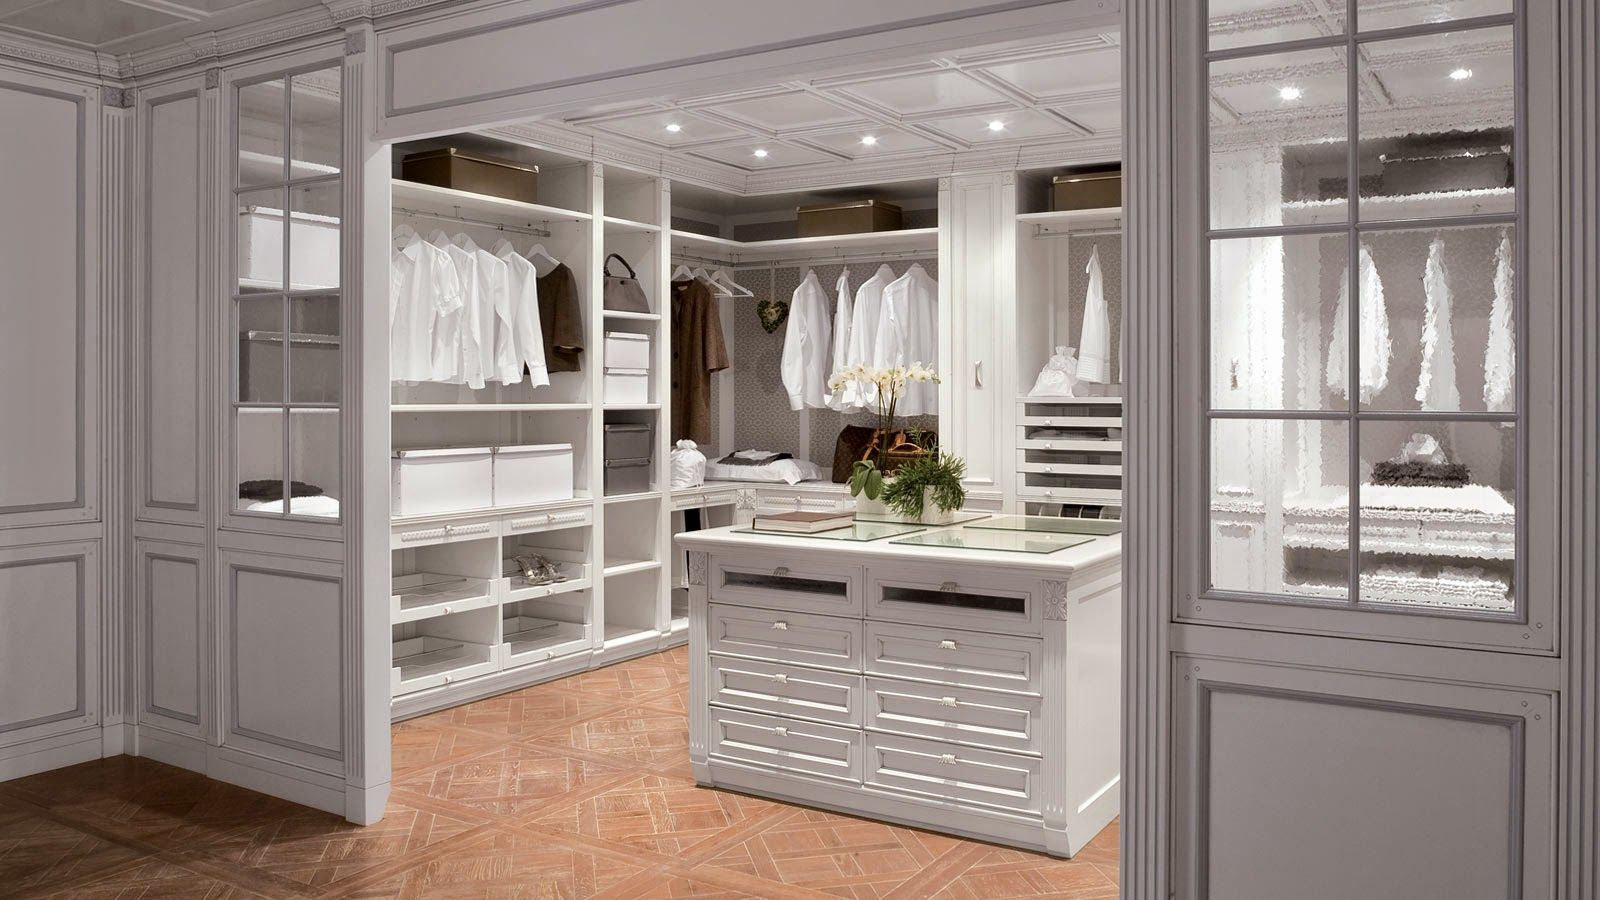 Walk In Closet Ideas Small Designs Organizers Diy House Pinterest Contemporary